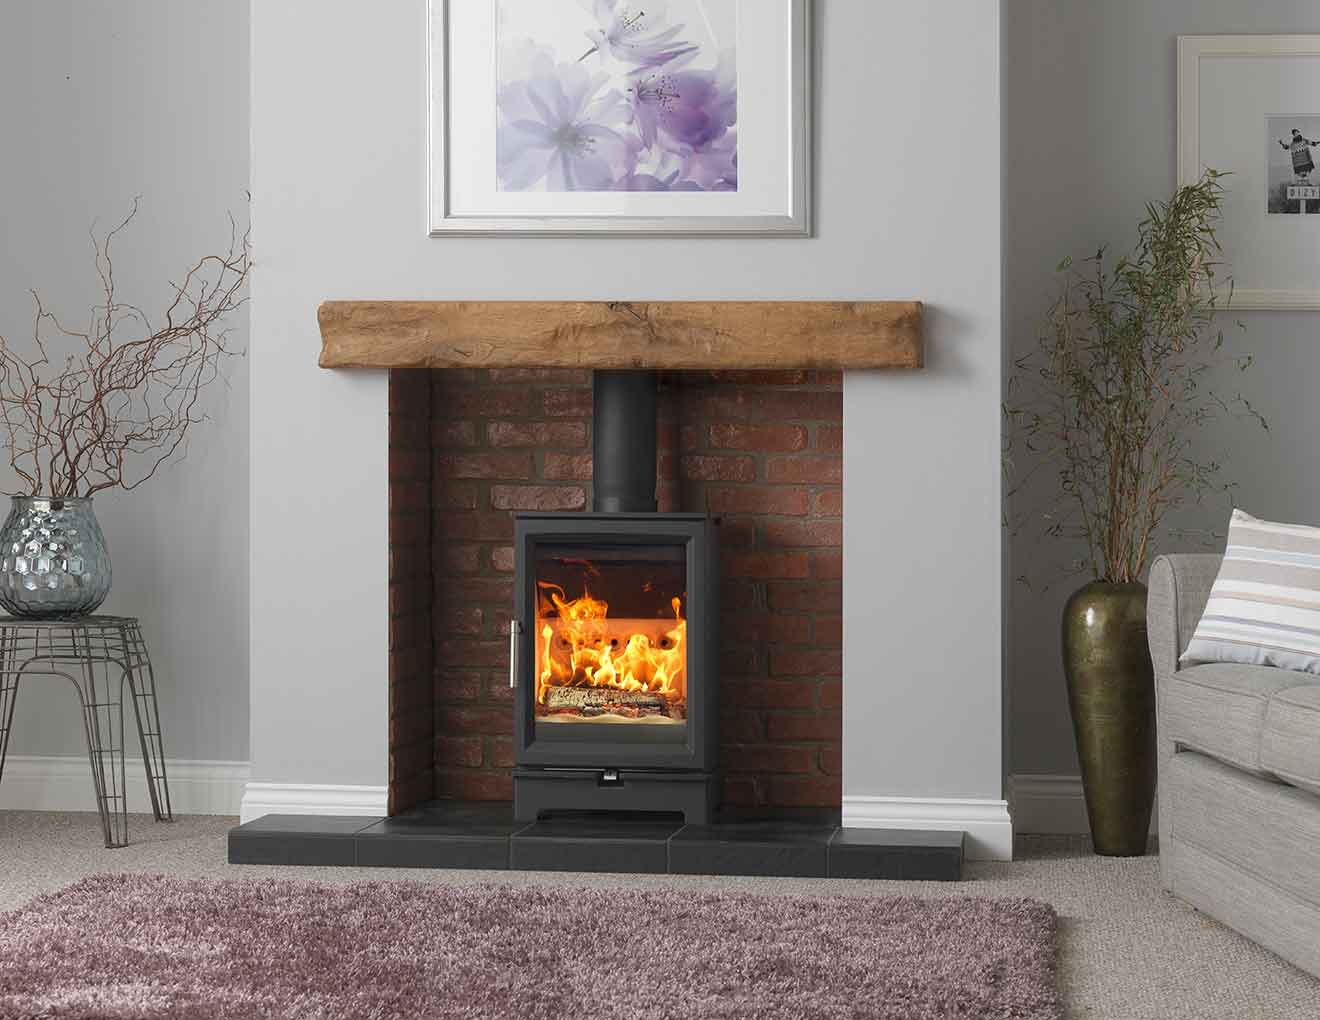 Fireline Woodtec 5kw wood burning stove in a chamber with a wooden beam above